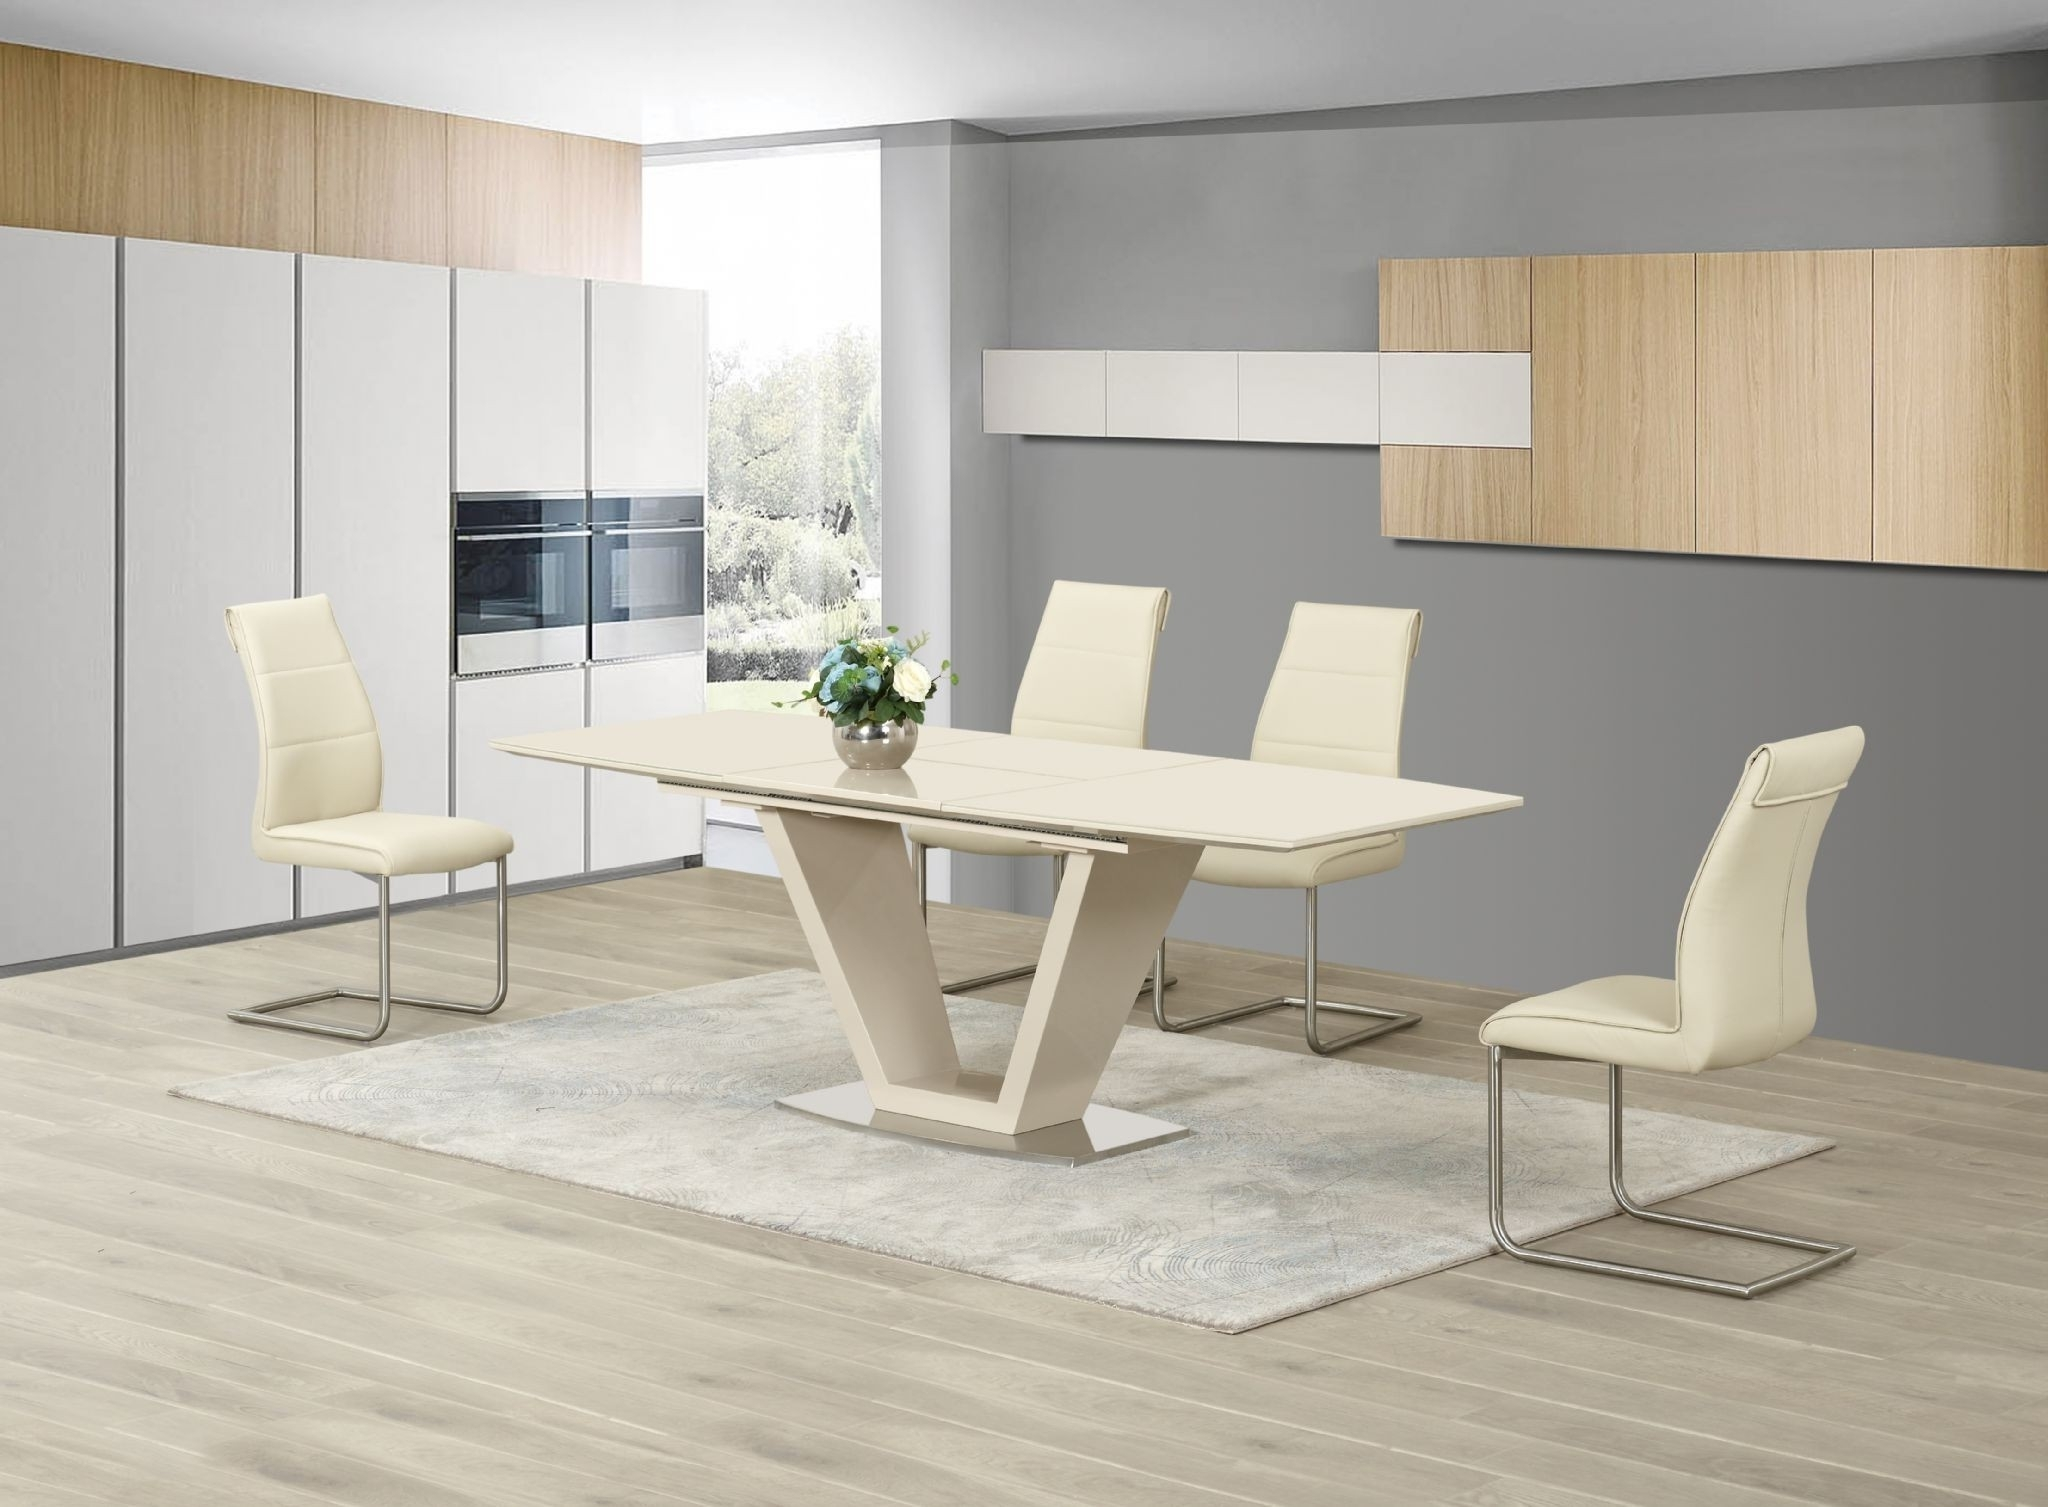 Widely Used Extended Dining Tables And Chairs In Floris Cream Gloss Extending Dining Table 160 220Cm (View 24 of 25)